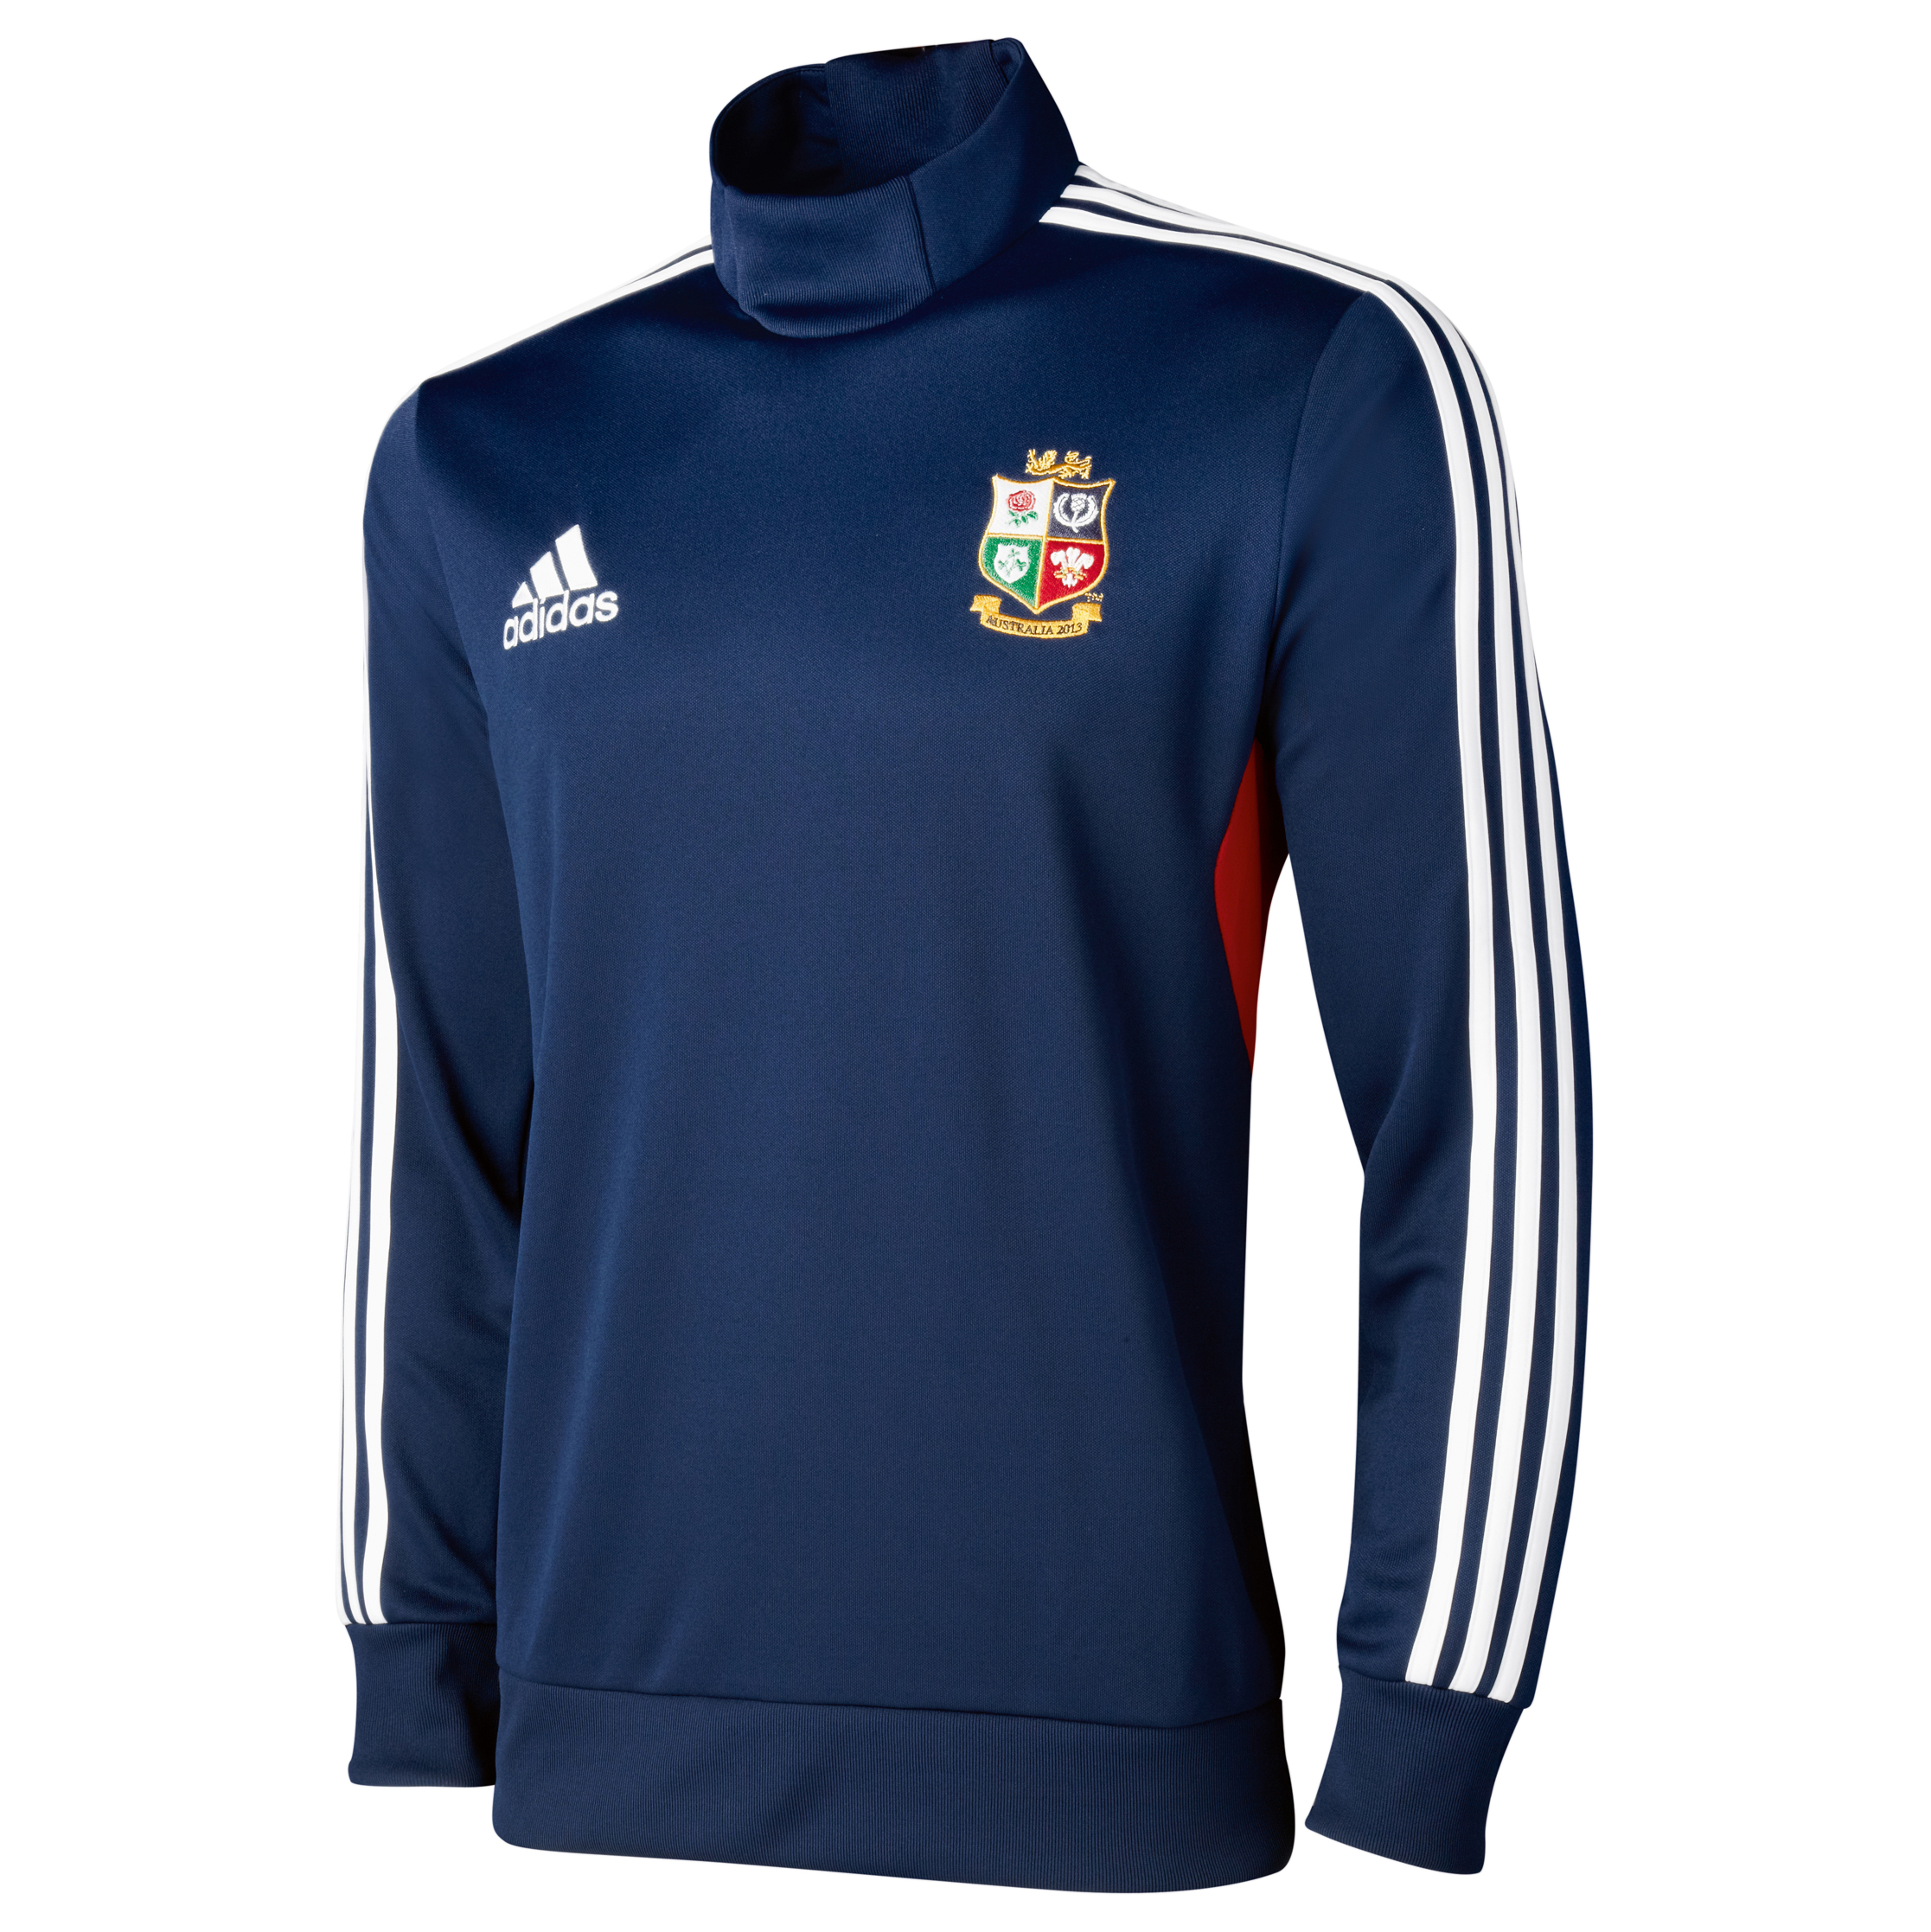 British & Irish Lions Drill Top - Collegiate Navy/White